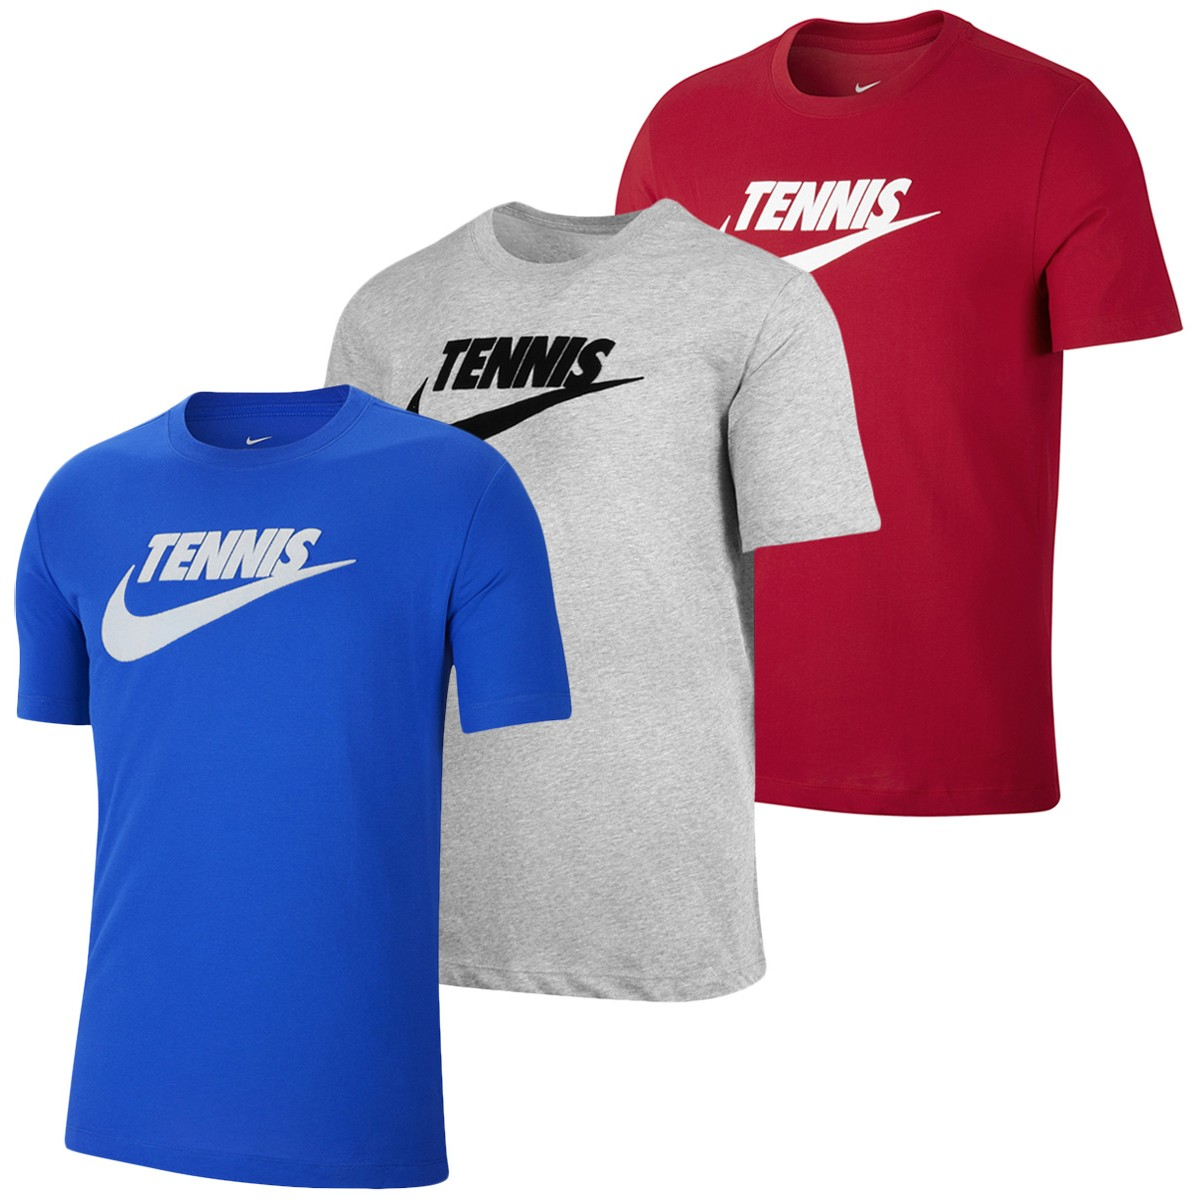 T-SHIRT NIKE COURT TENNIS